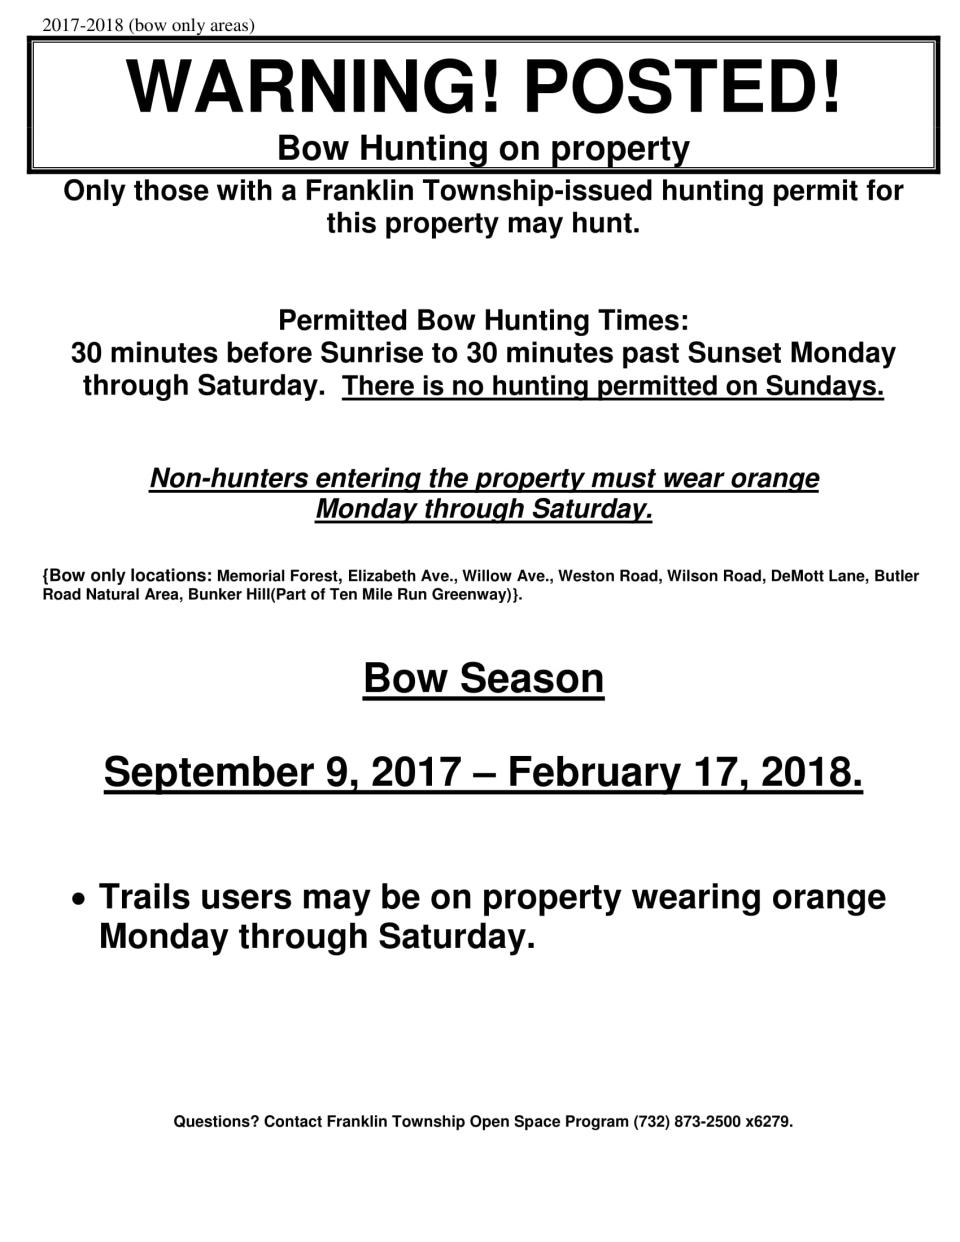 Posting edge, hunting sign, bow only areas 2017 to 2018 Black FINAL-1